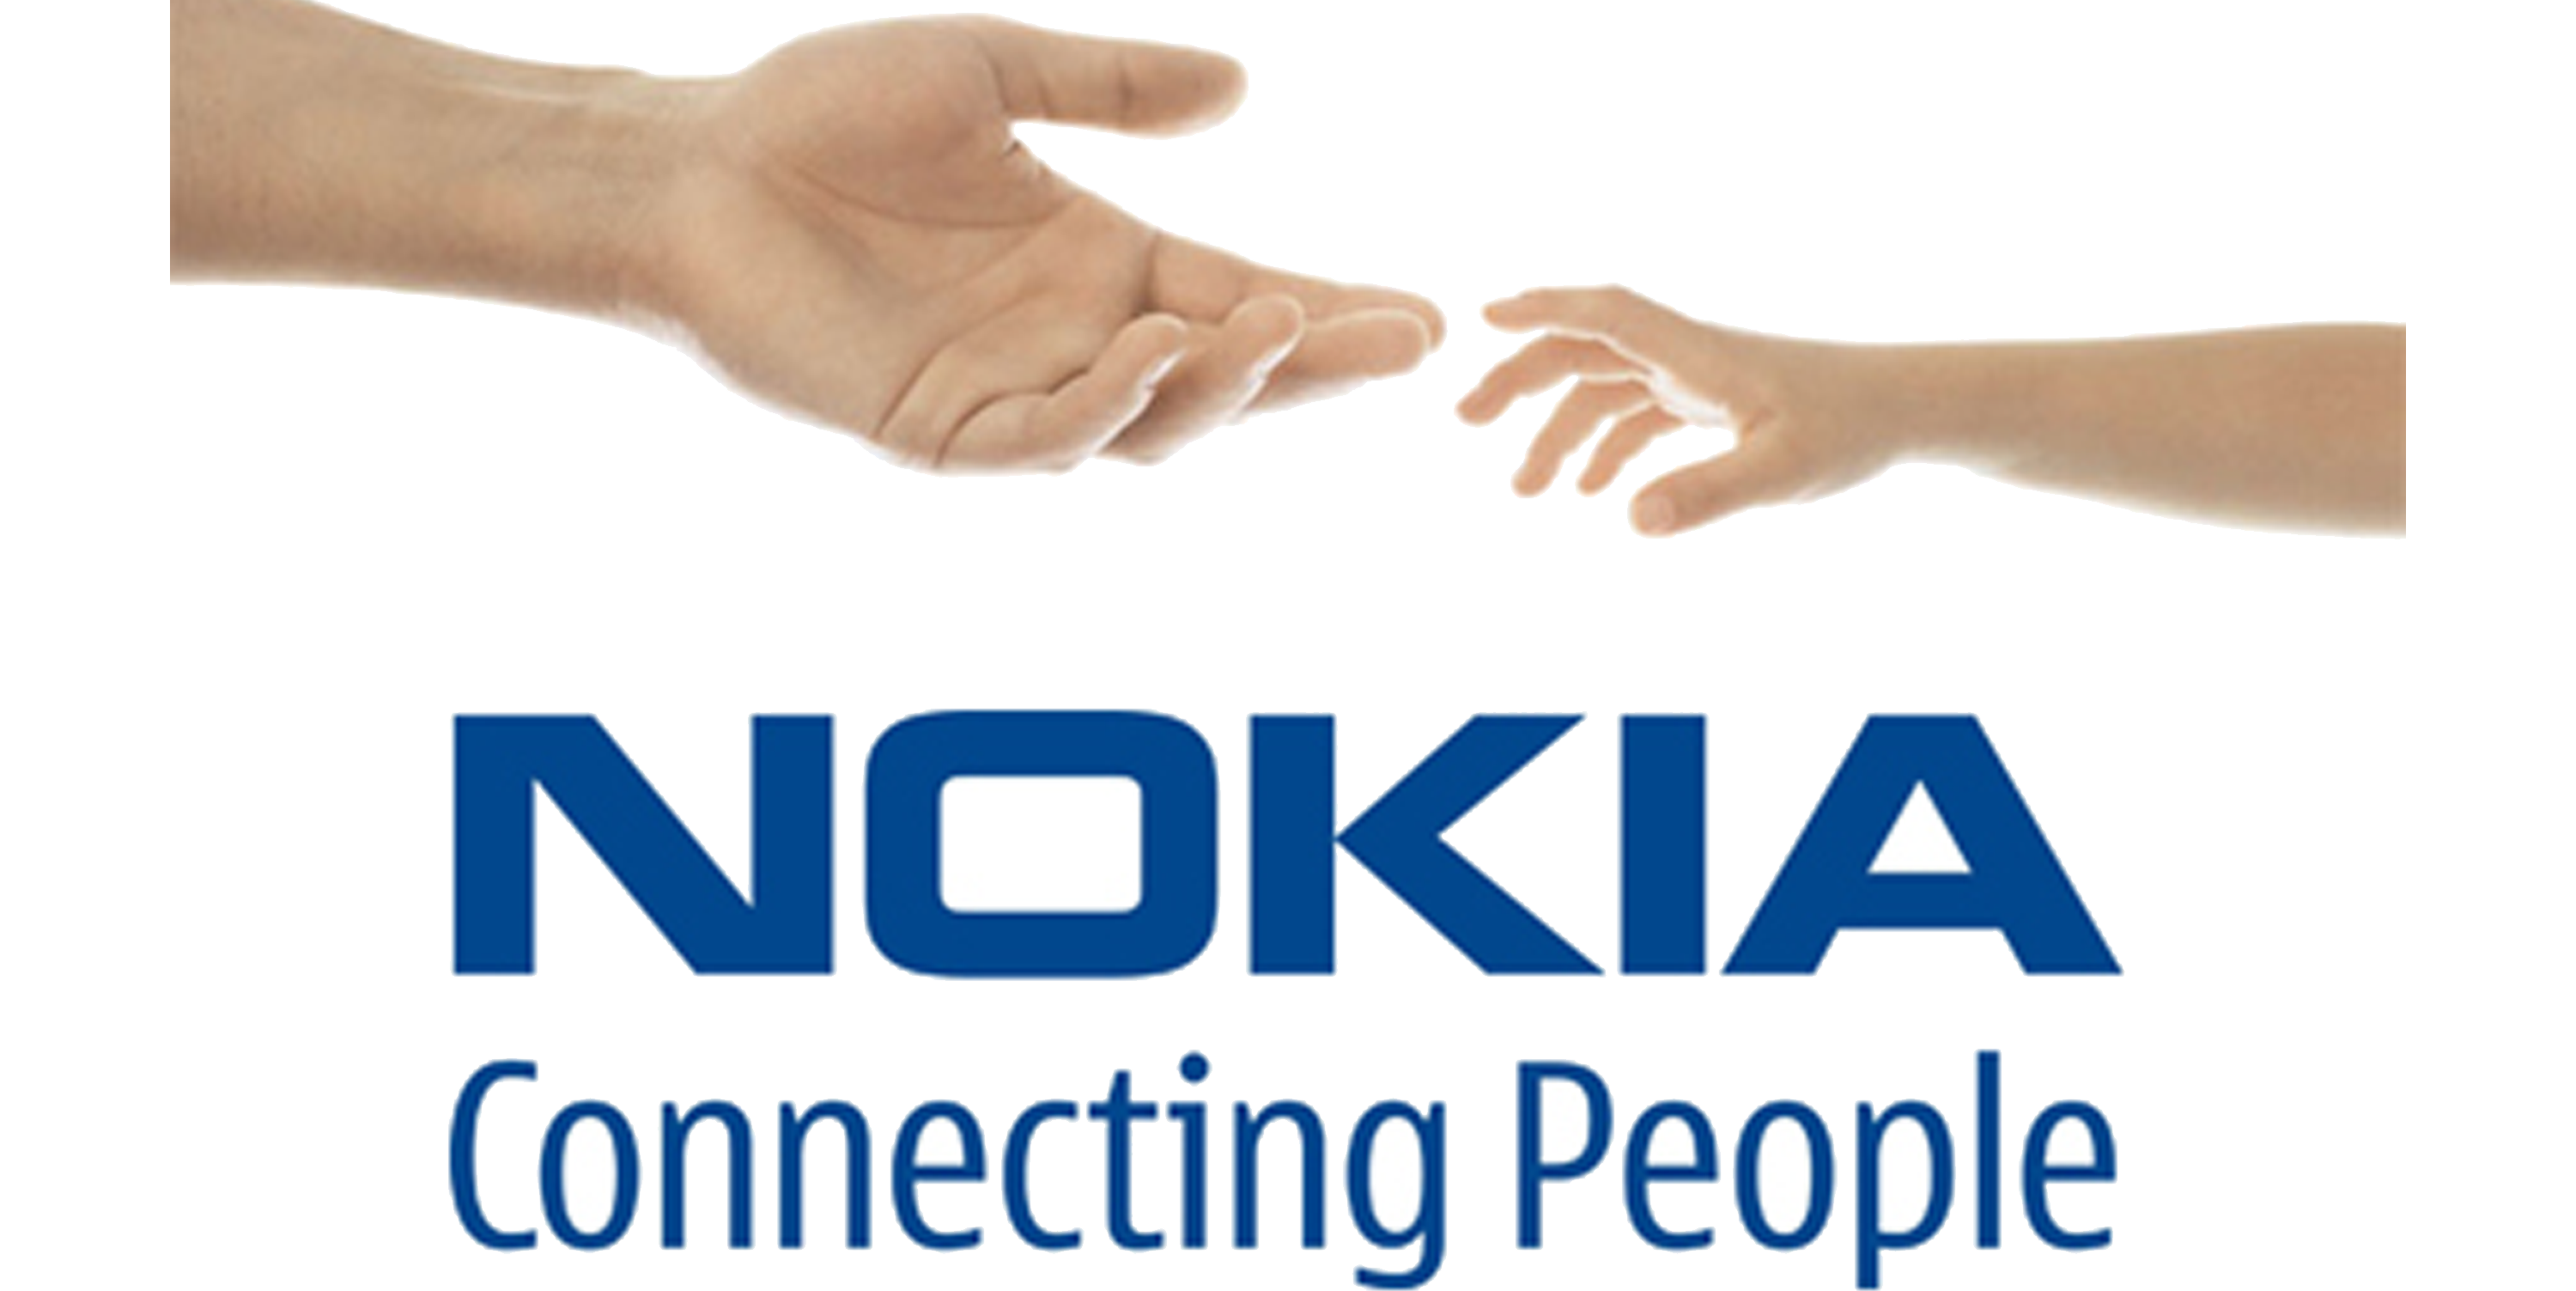 nokia with hands connecting people png #1490